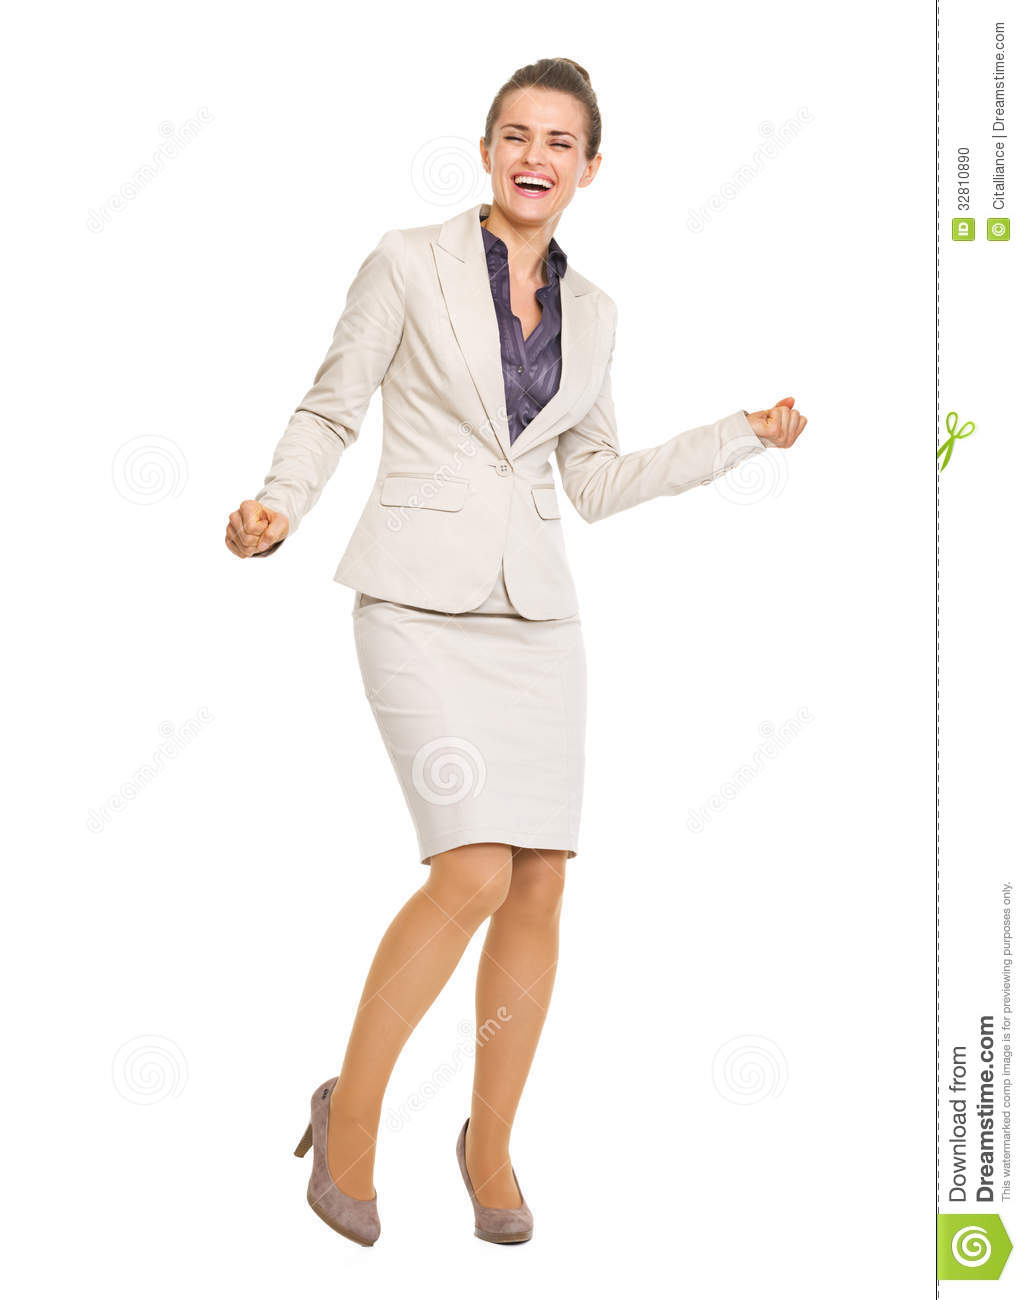 high resolution map of the united states with Stock Photo Full Length Portrait Happy Business Woman Dancing High Resolution Photo Image32810890 on Who Owns Who also Stock Photo Full Length Portrait Happy Business Woman Dancing High Resolution Photo Image32810890 additionally Royalty Free Stock Image People Work Construction Sign Image16507626 together with Stock Image Evil Man Image27318091 as well Stock Photos Futuristic Technology Background High Resolution Copy Illustration Image33984023.